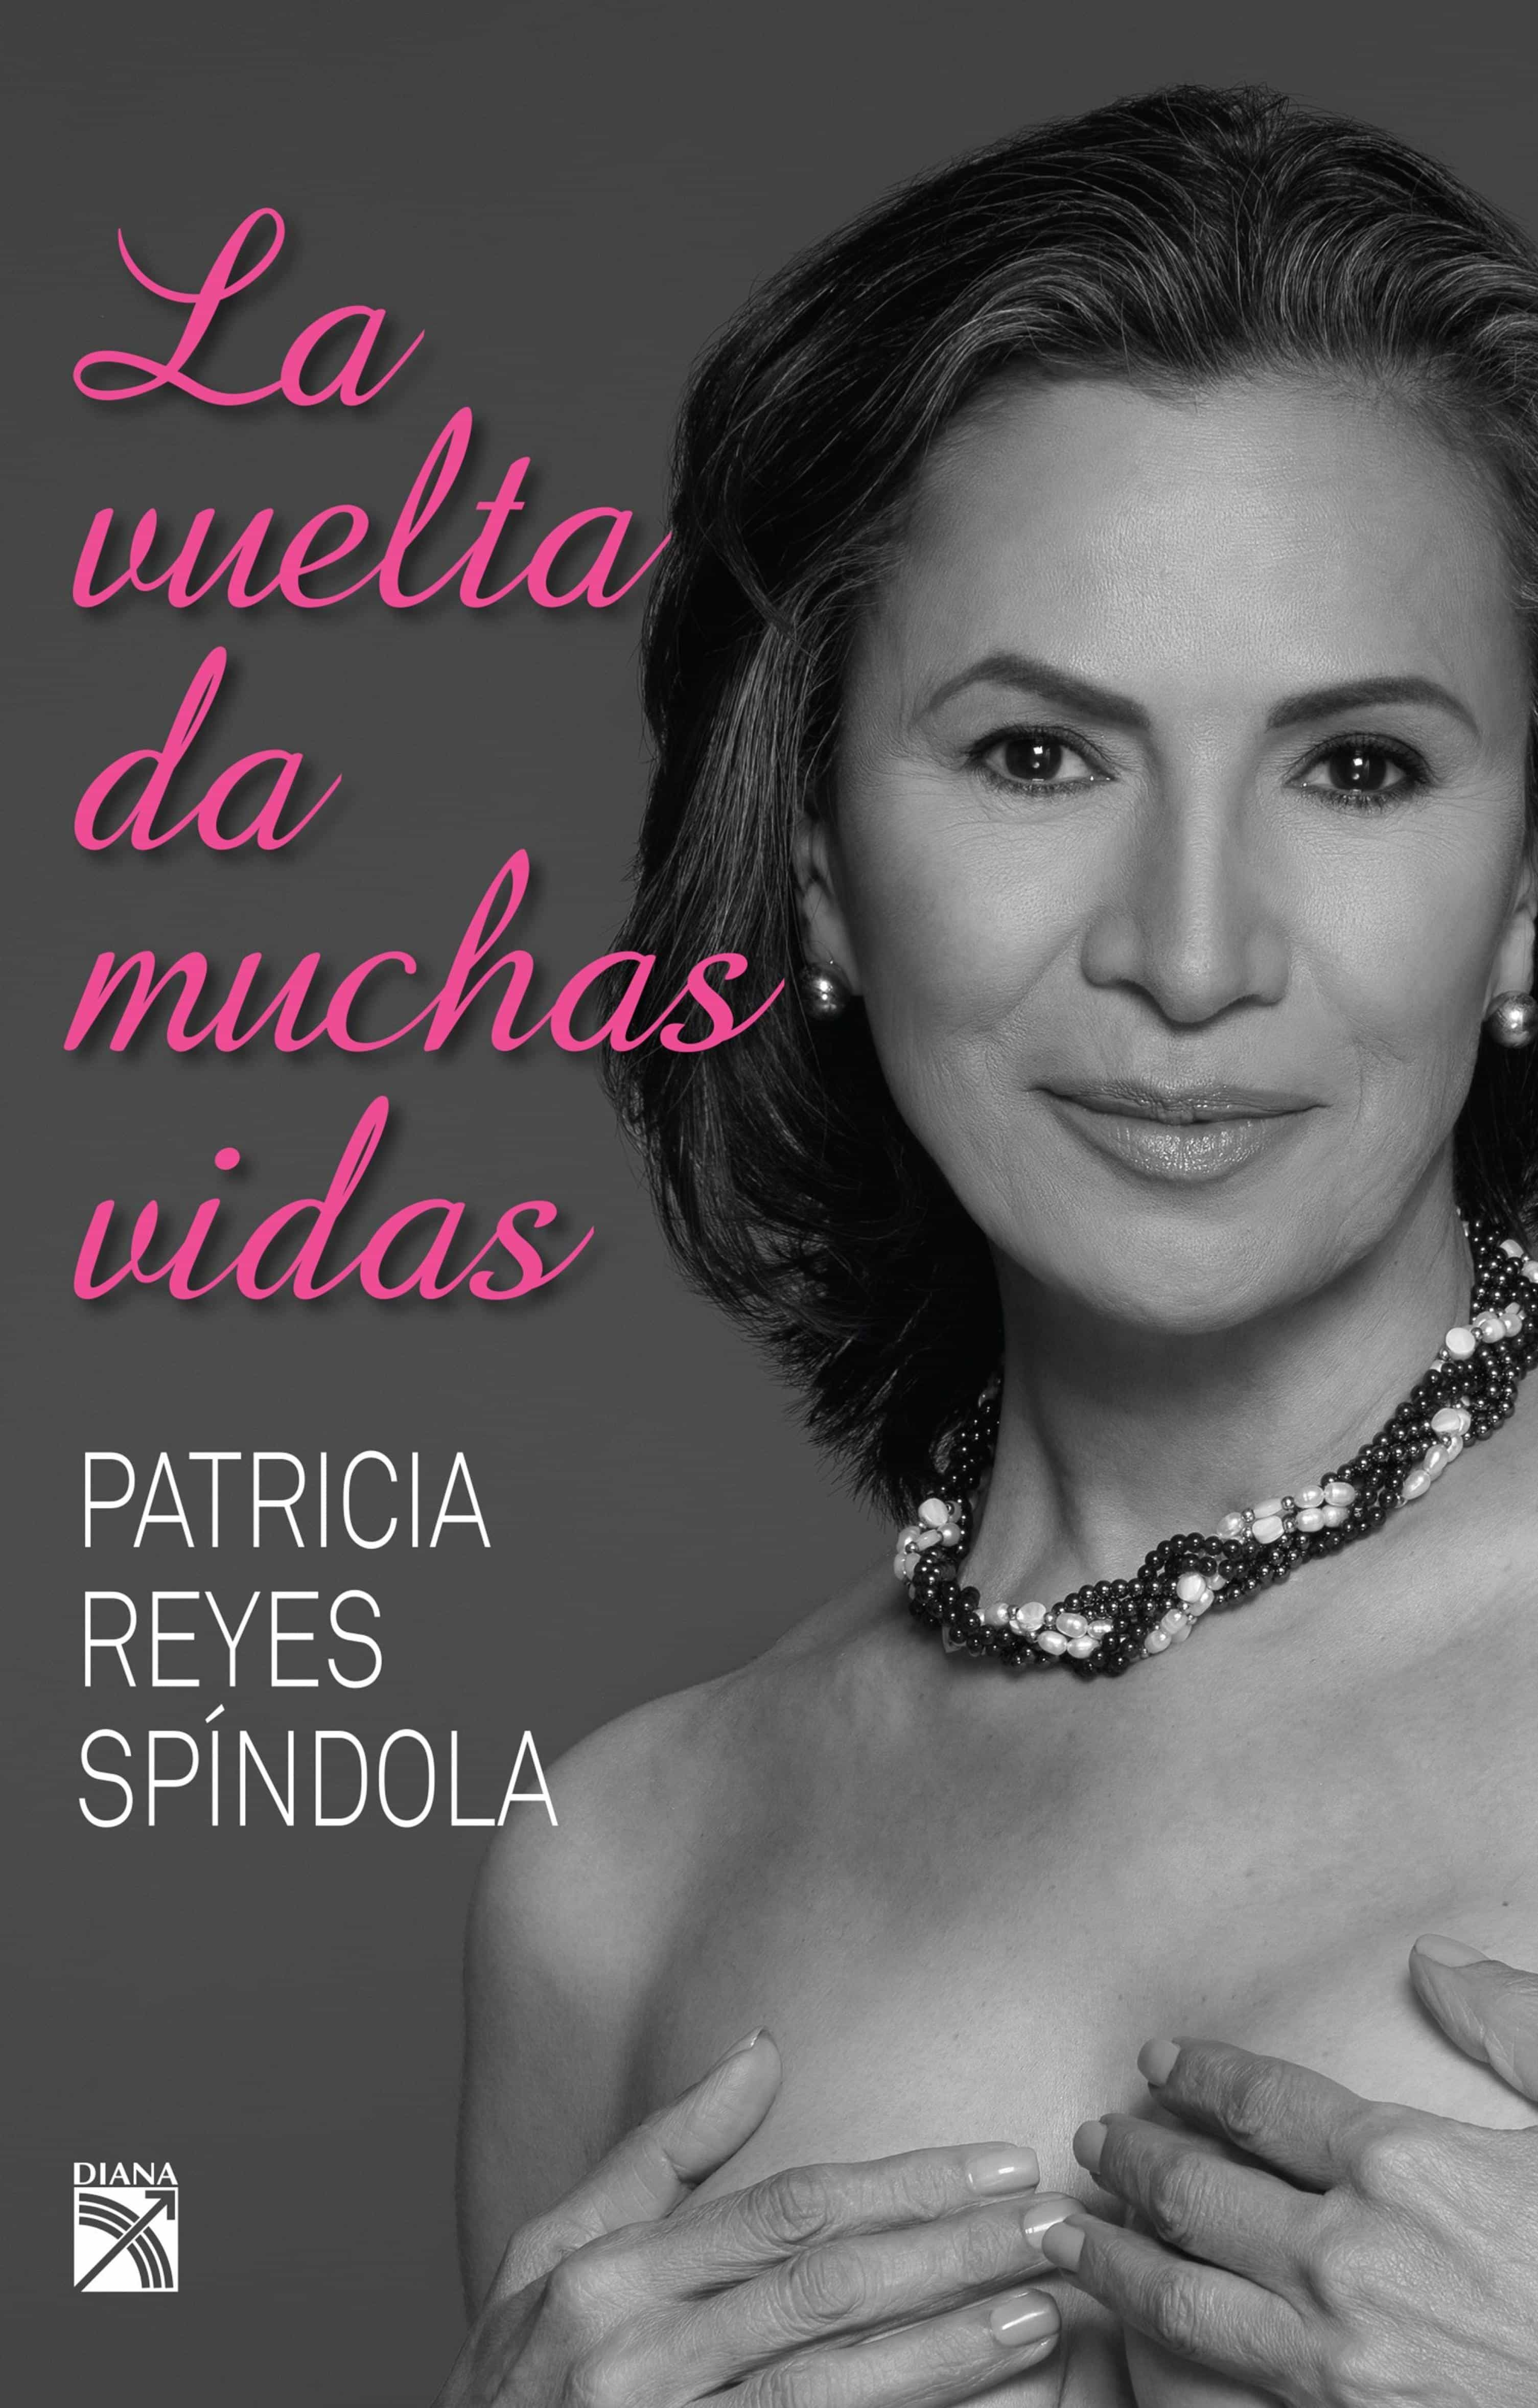 Watch Patricia Reyes Spindola video